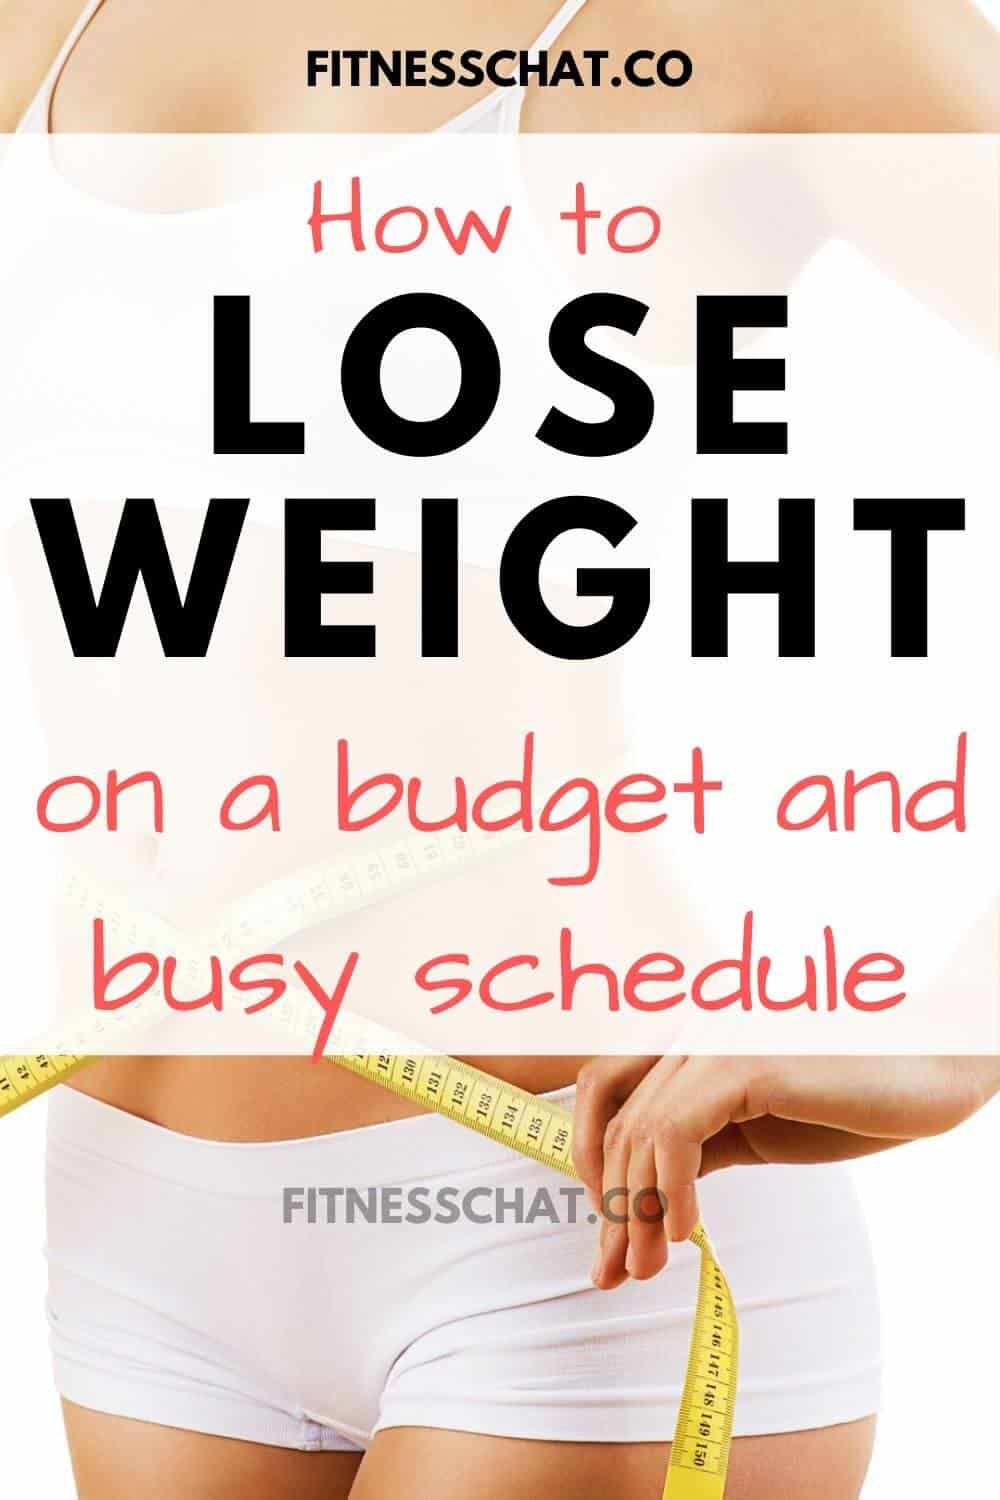 how to lose weight on a budget and busy schedule